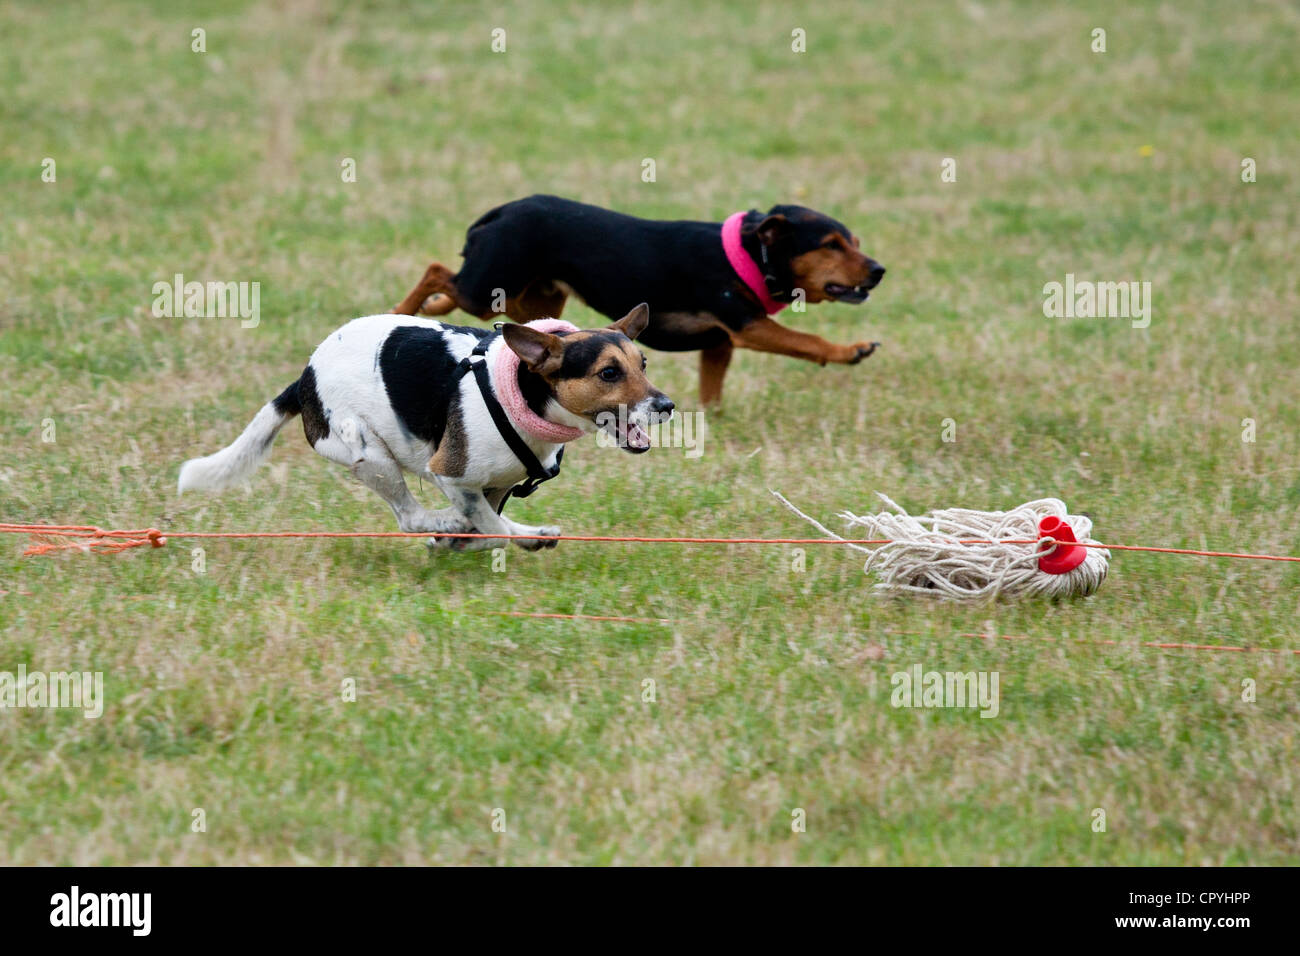 Terriers terrier chasing racing at Moreton Show, agricultural event in Moreton-in-the-Marsh, The Cotswolds, Gloucestershire, - Stock Image